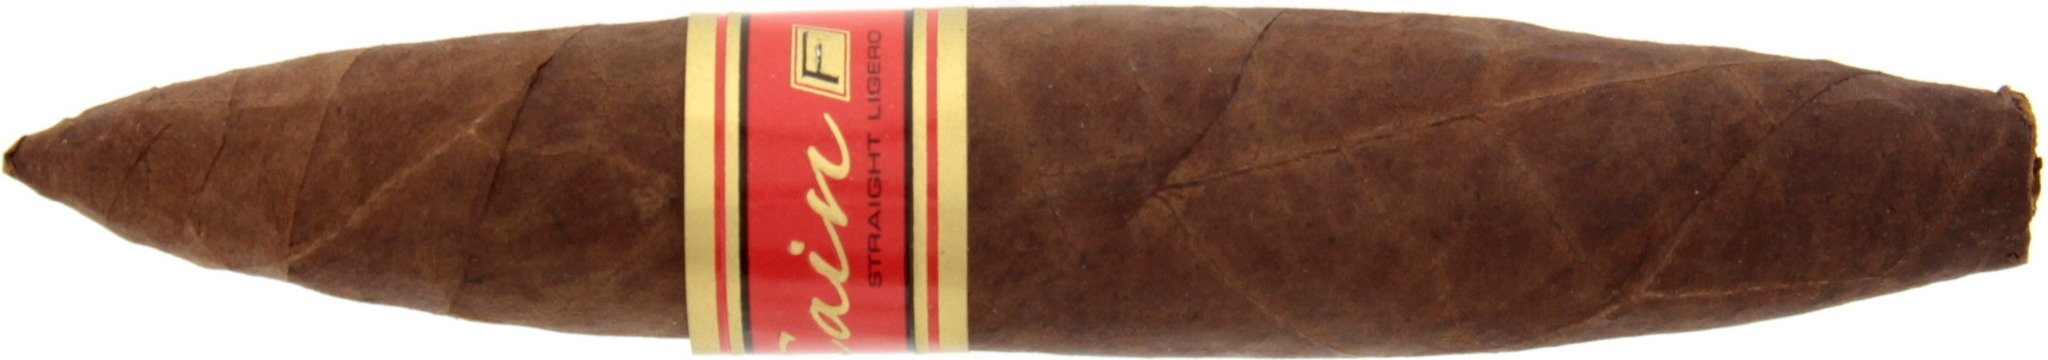 Cain Serie F Perfecto Sun Grown Lounge Edition 2014